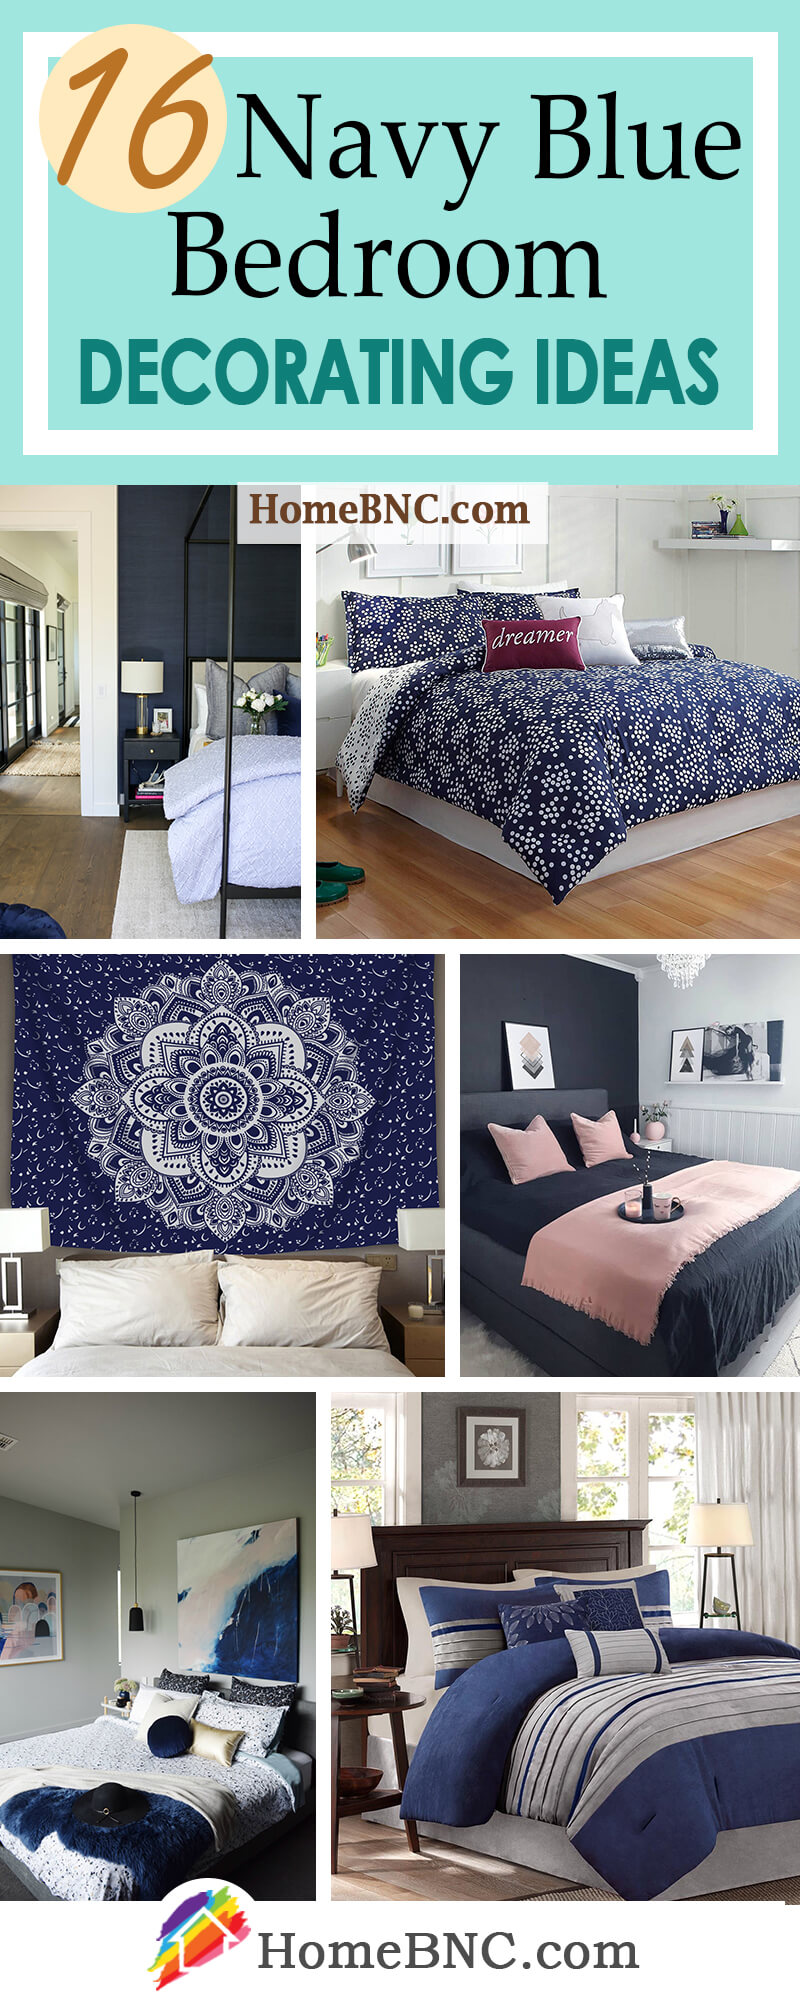 11 Best Navy Blue Bedroom Decor Ideas for a Timeless Makeover in 11